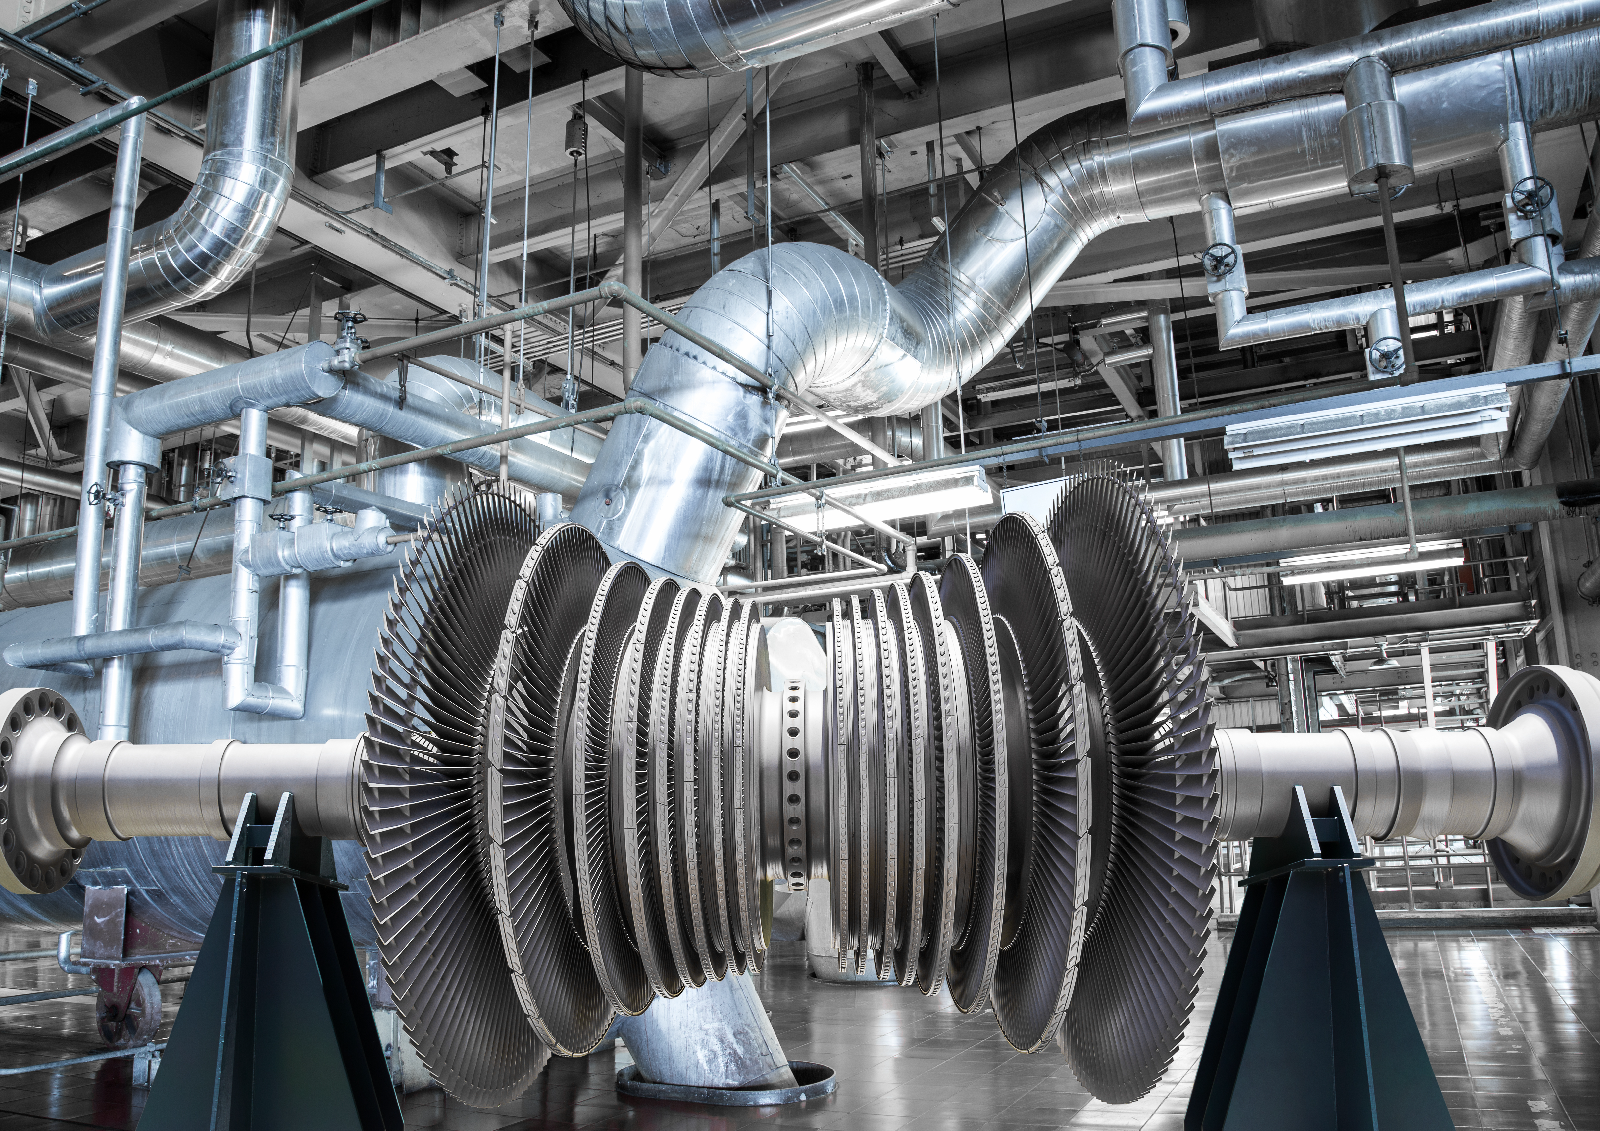 DD power station - project image - shutterstock_394241746_Websize.png